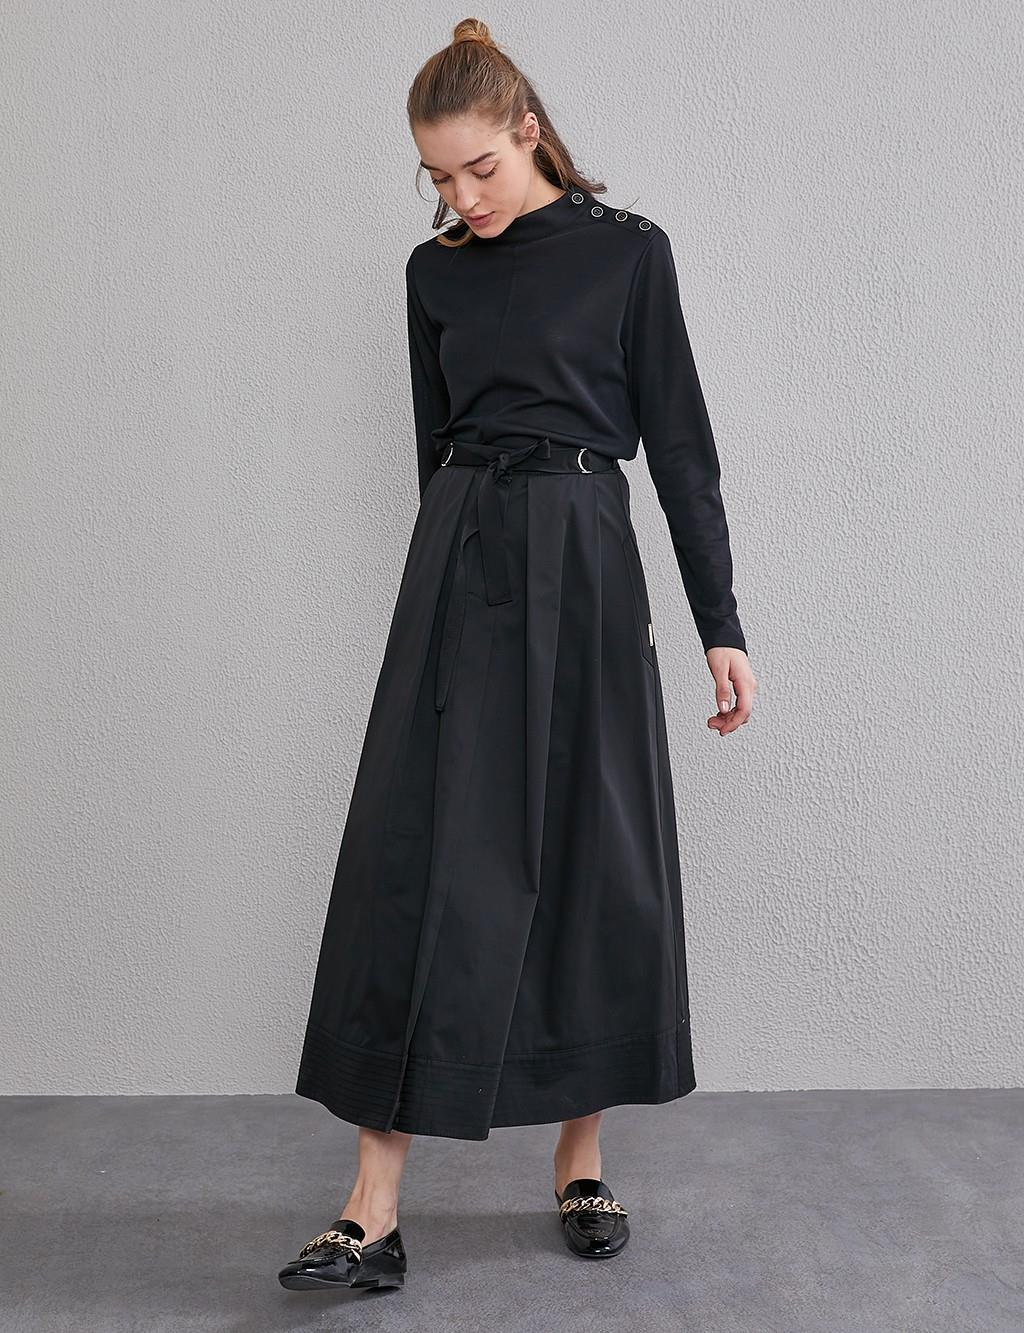 Pleated Skirt With Pockets A20 12041 Black